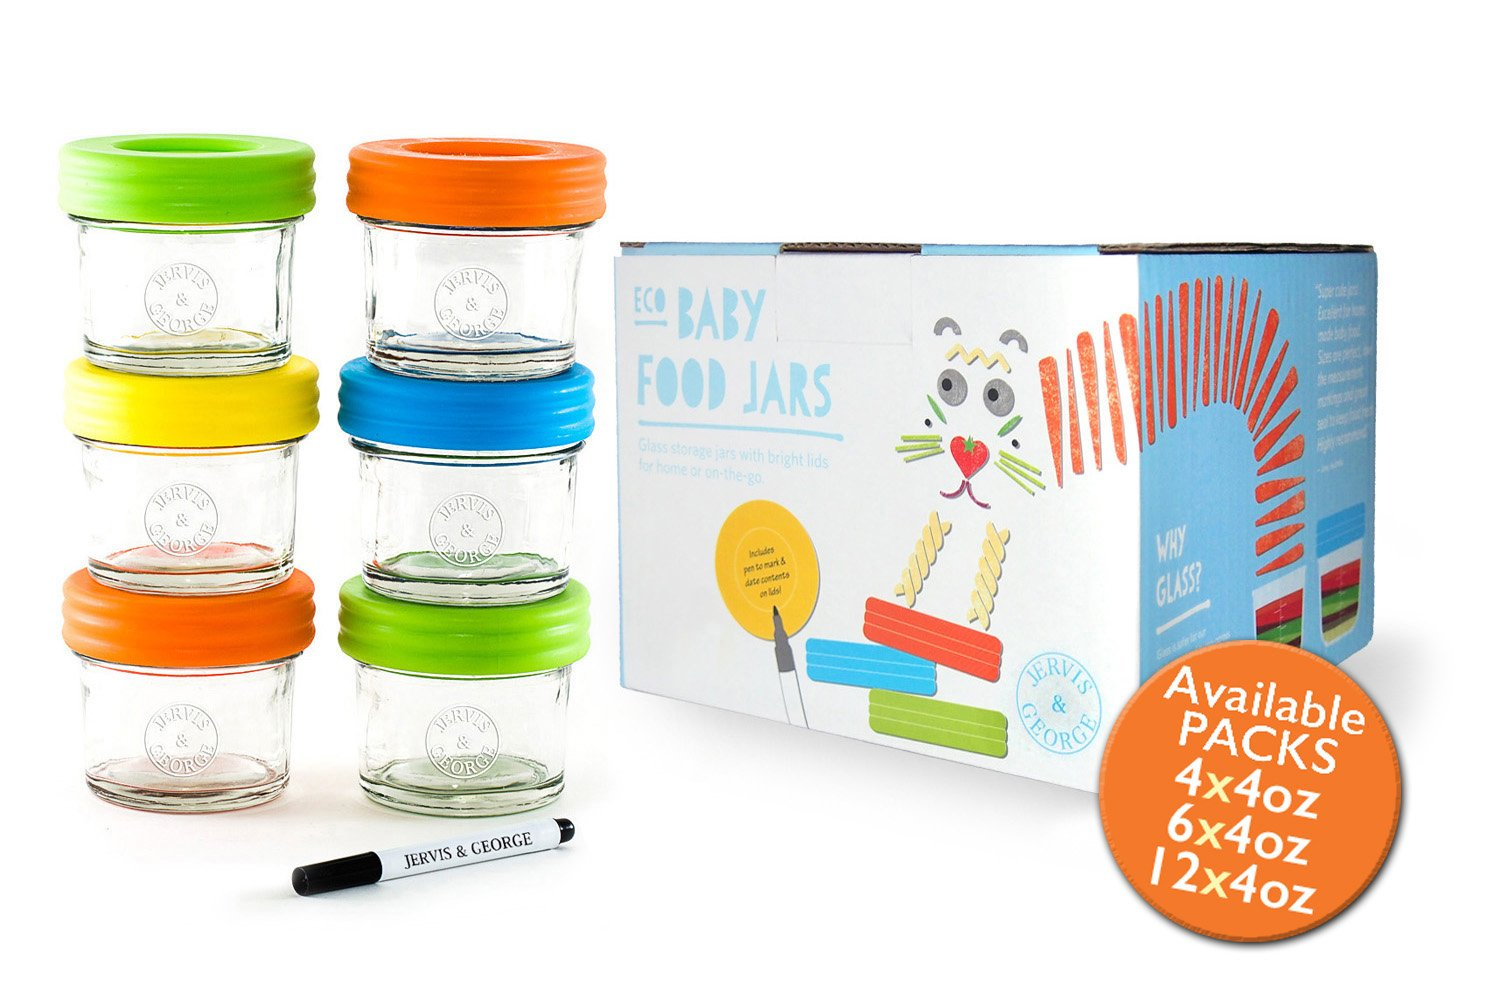 glass baby food storage containers set contains 6 small reusable 4oz jars with 4861203177731. Black Bedroom Furniture Sets. Home Design Ideas